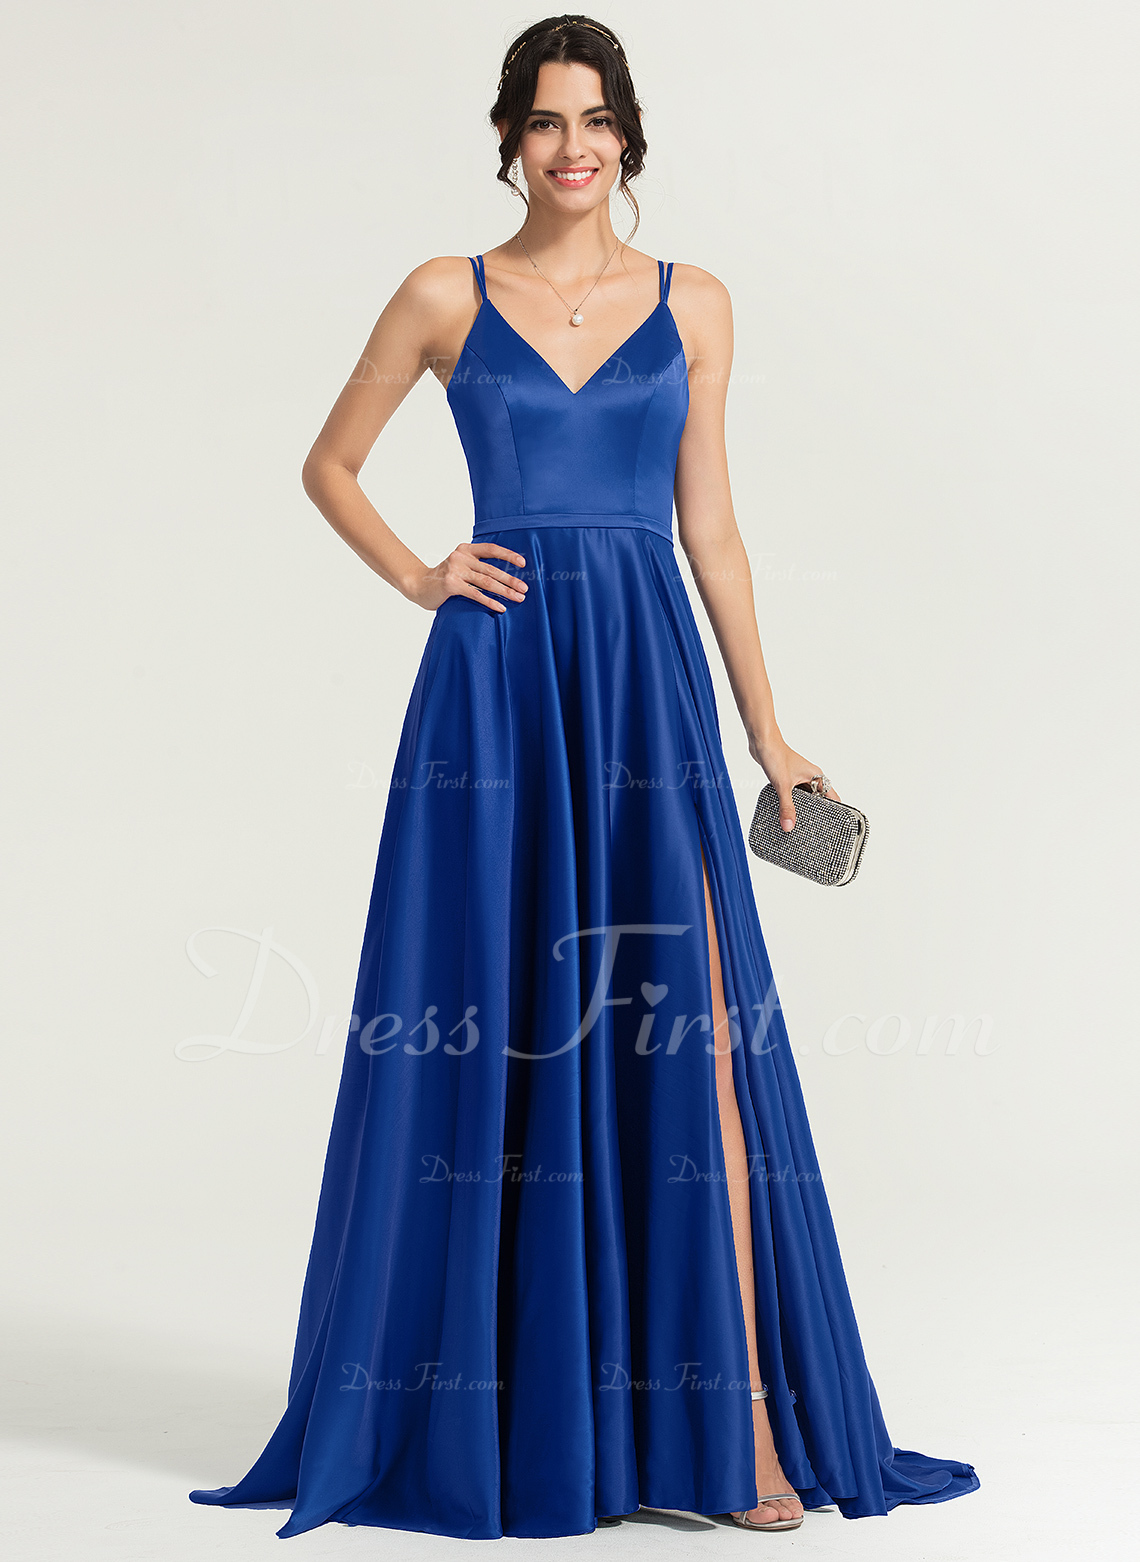 652e7889566 A-Line Princess V-neck Sweep Train Satin Prom Dresses With Split Front   186911